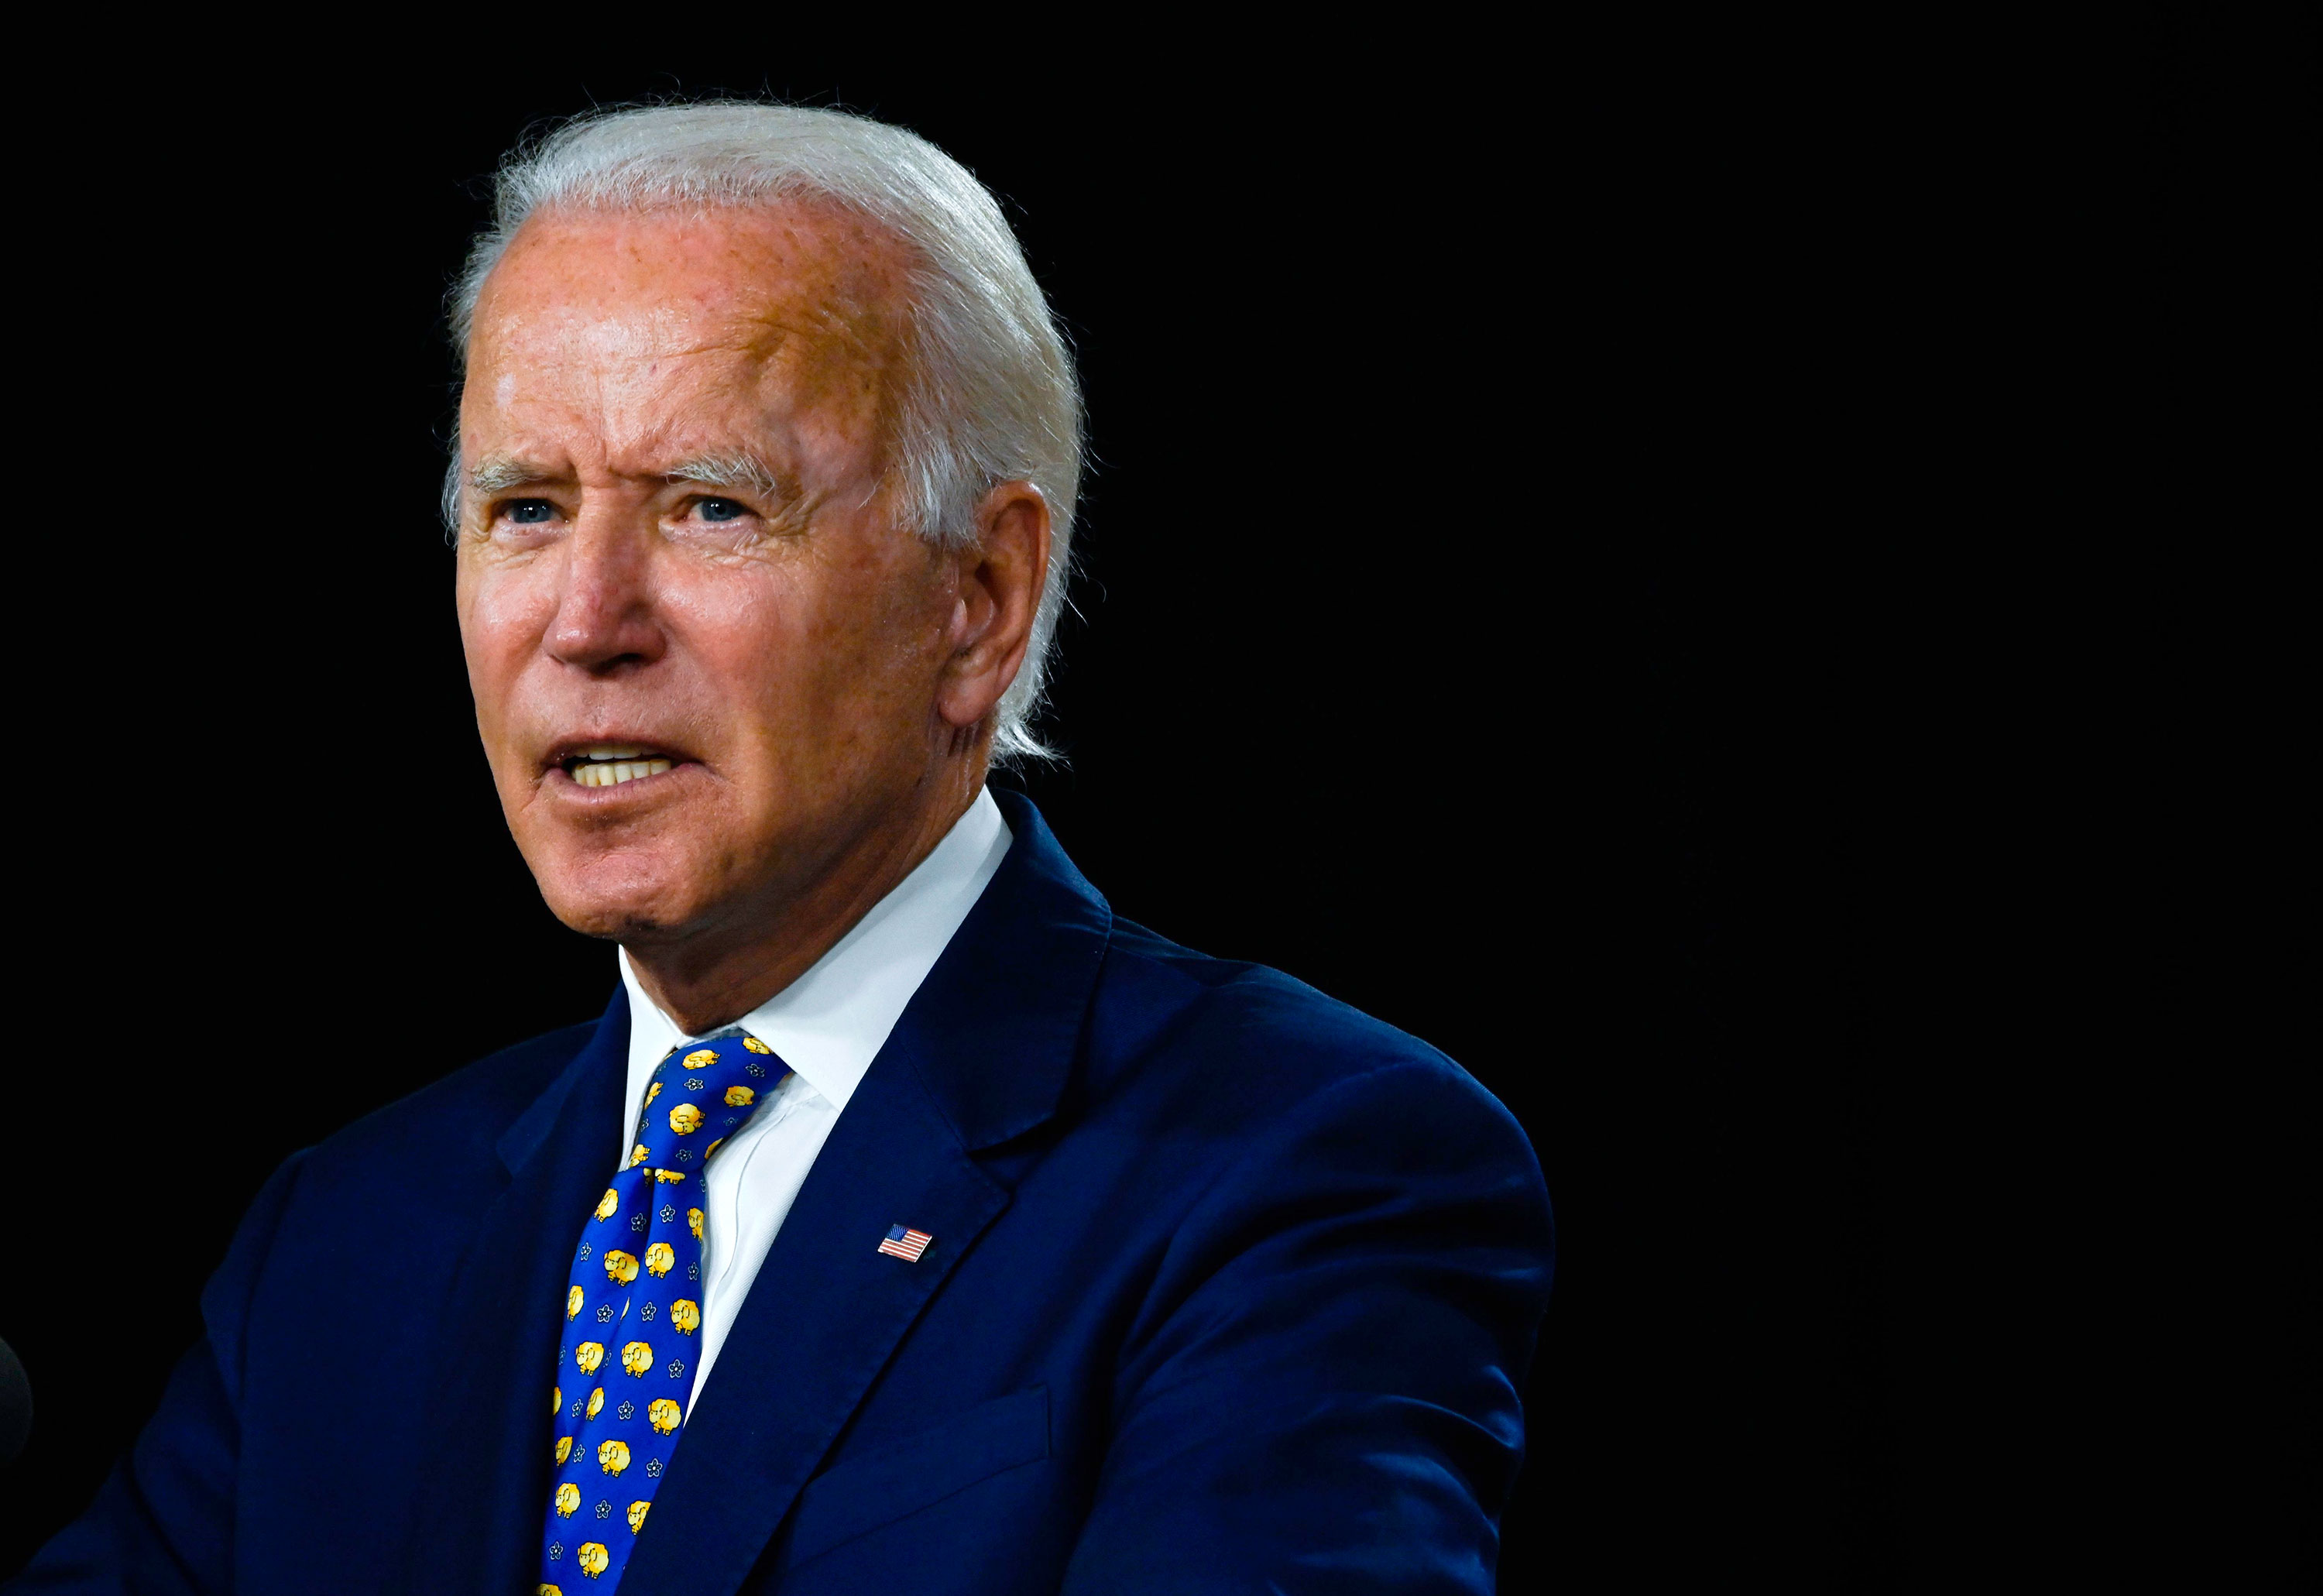 Biden says he will not release list of his potential Supreme Court nominees before election